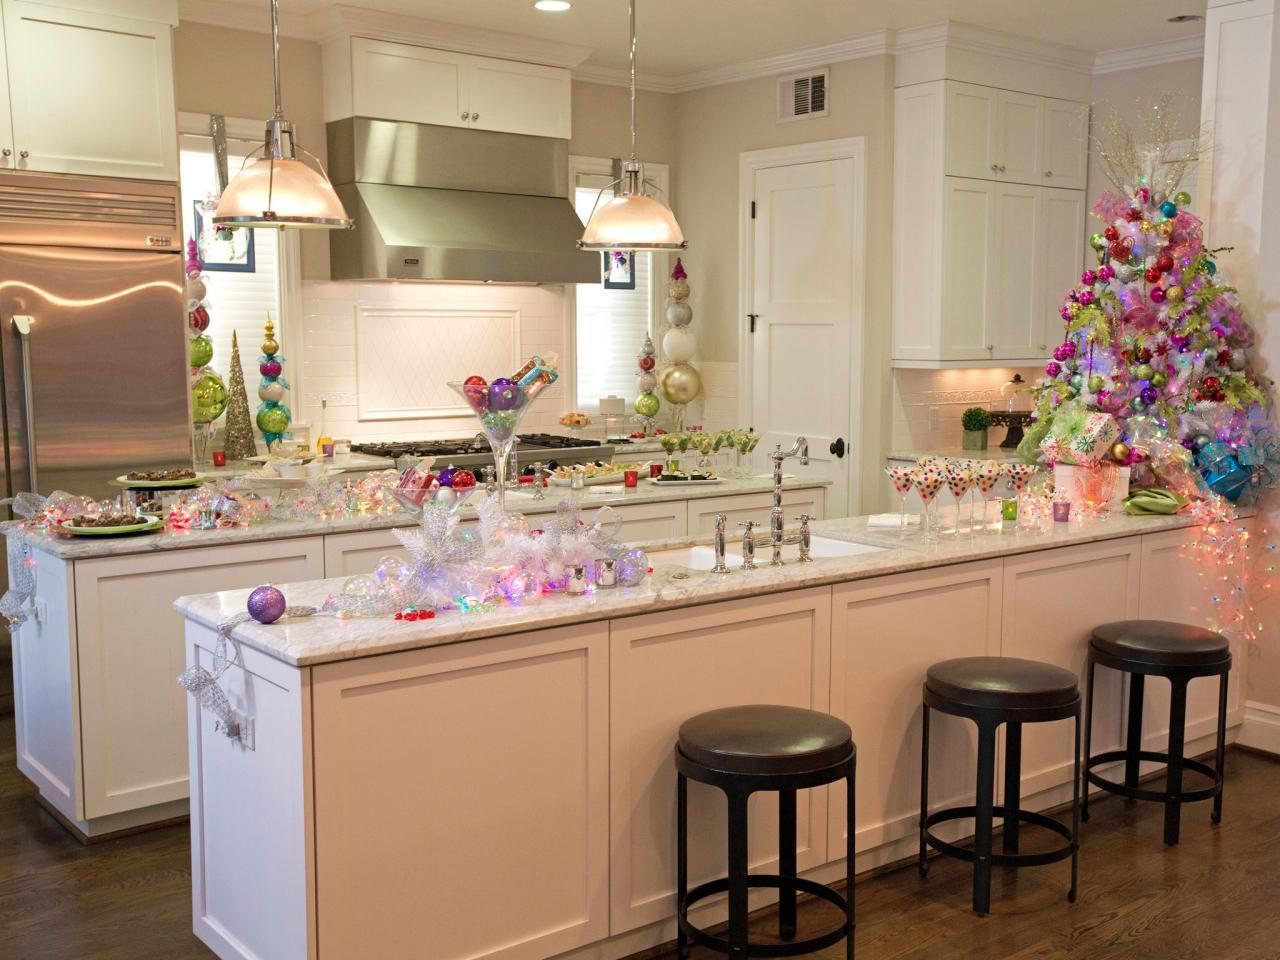 8 perfectly decorated holiday kitchens shakeology for Christmas decorating kitchen cabinets